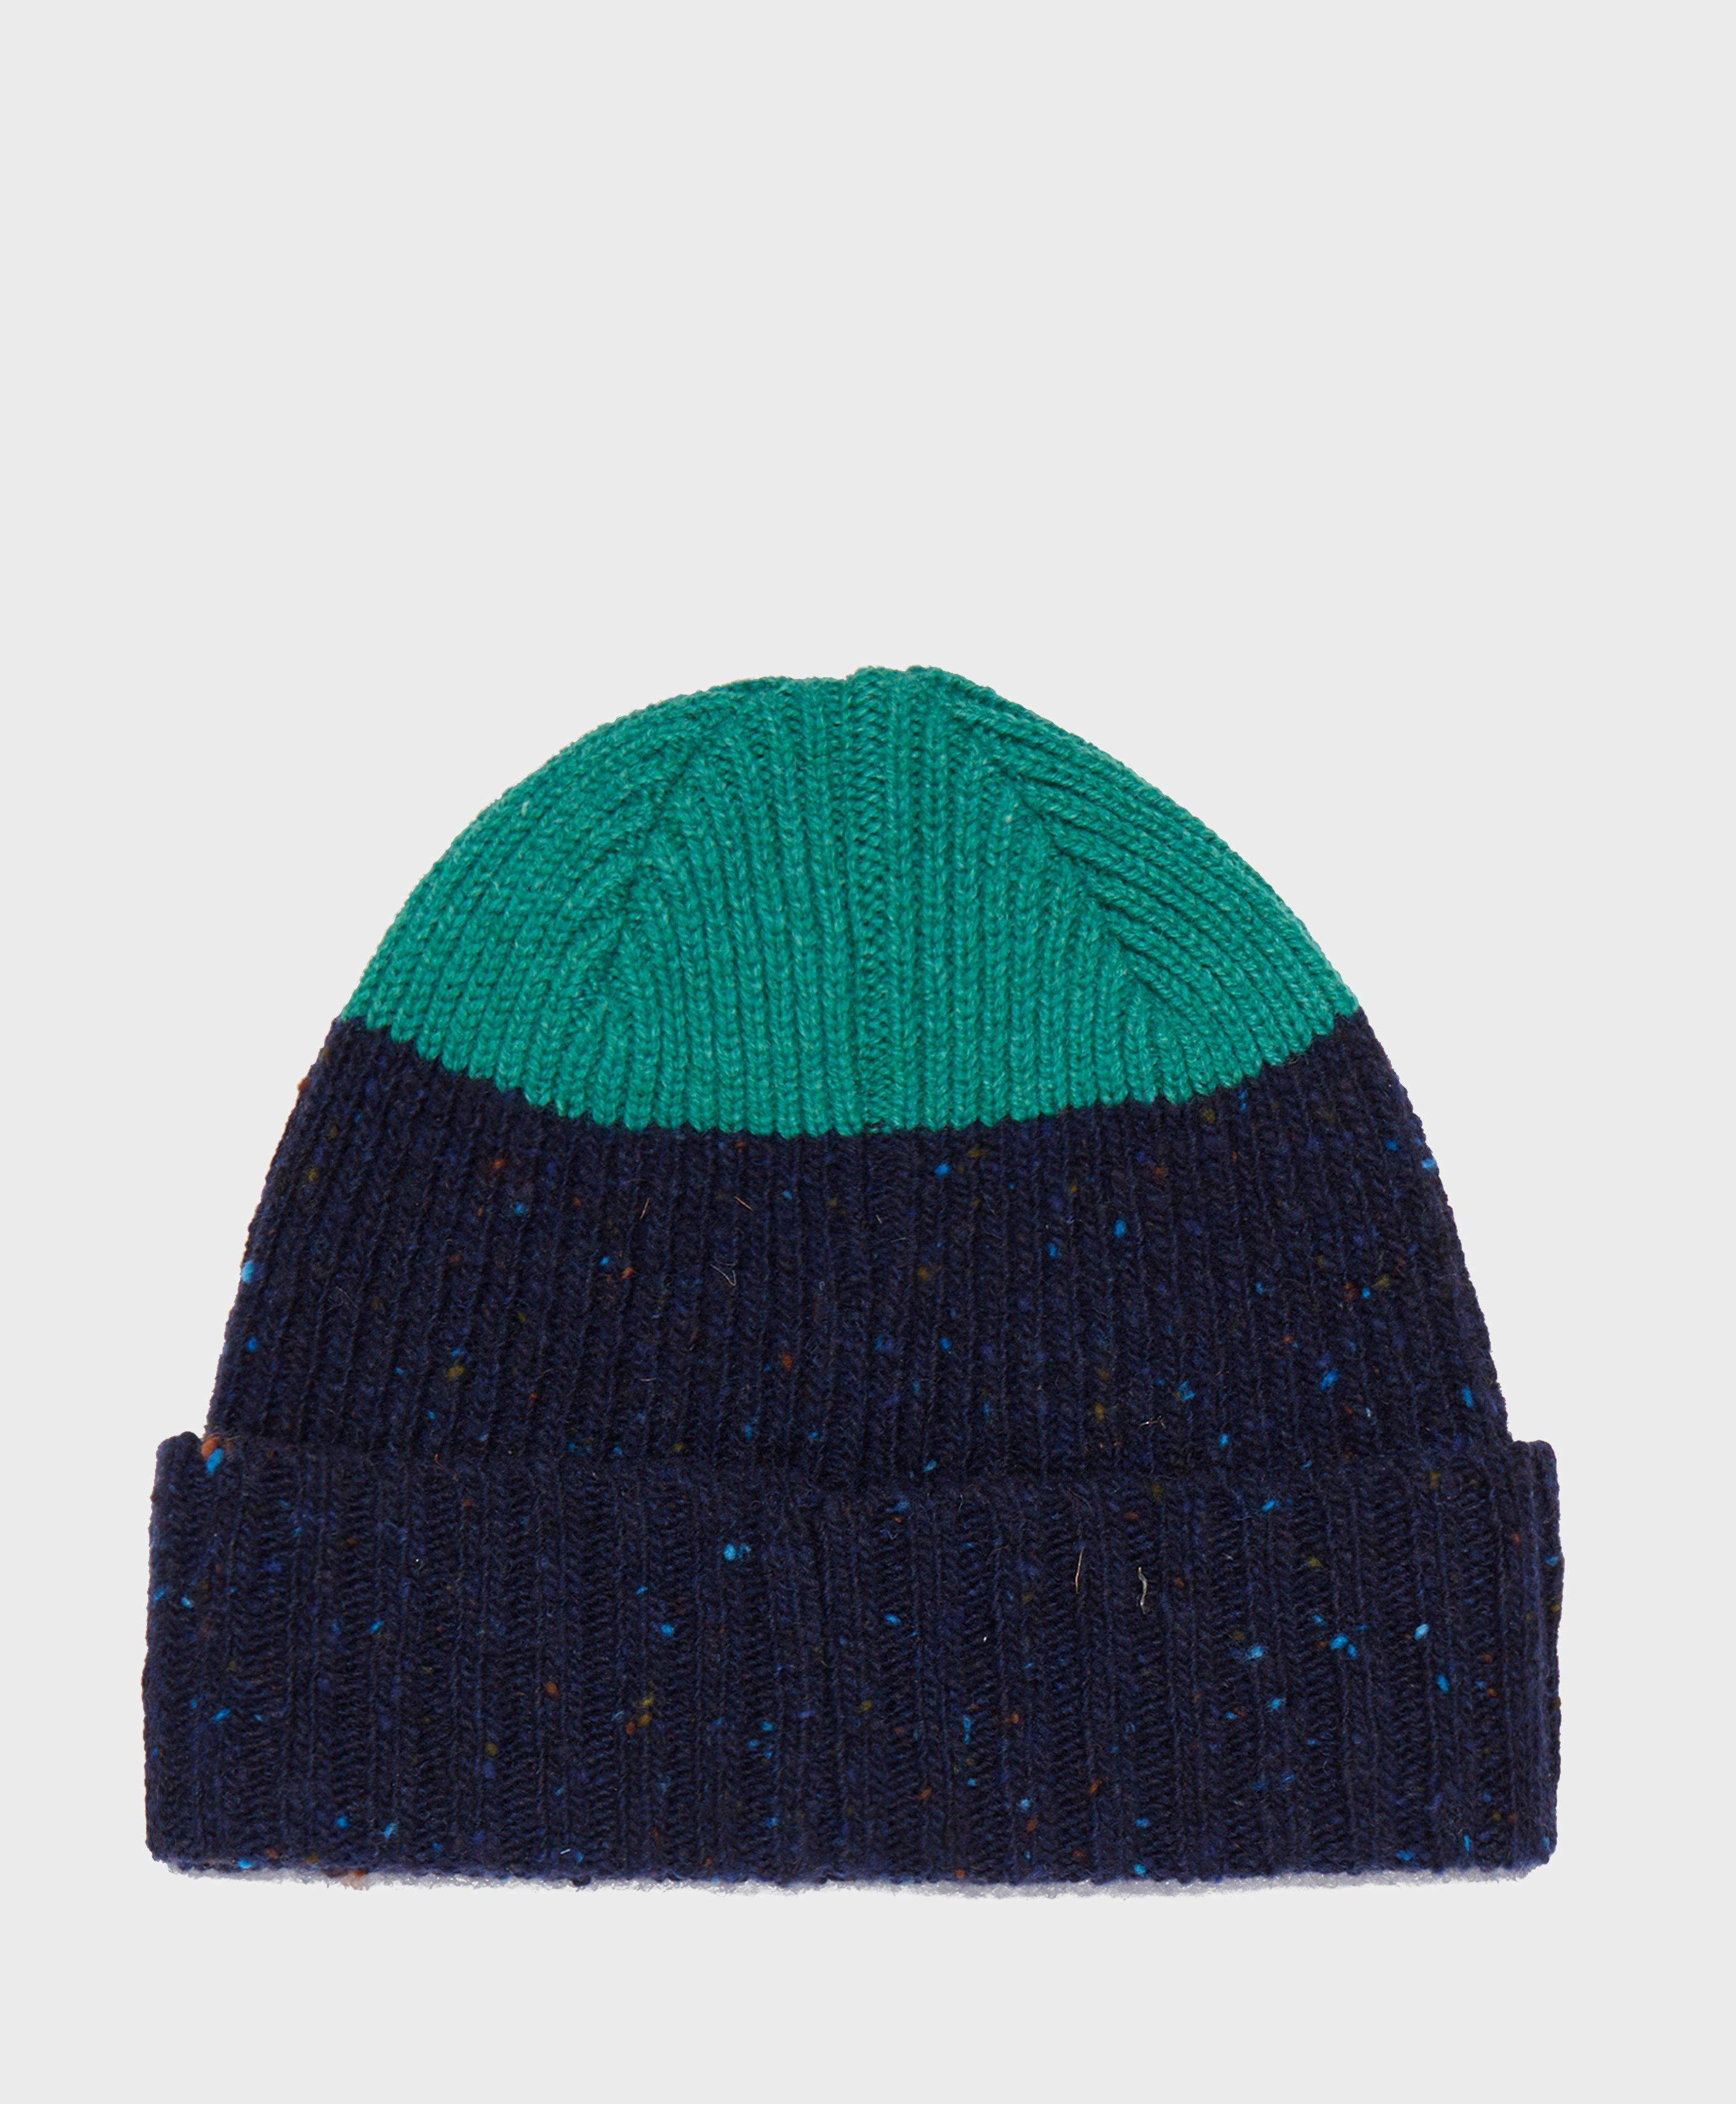 c16a2cf2 Barbour Birkhouse Knitted Beanie in Blue for Men - Lyst